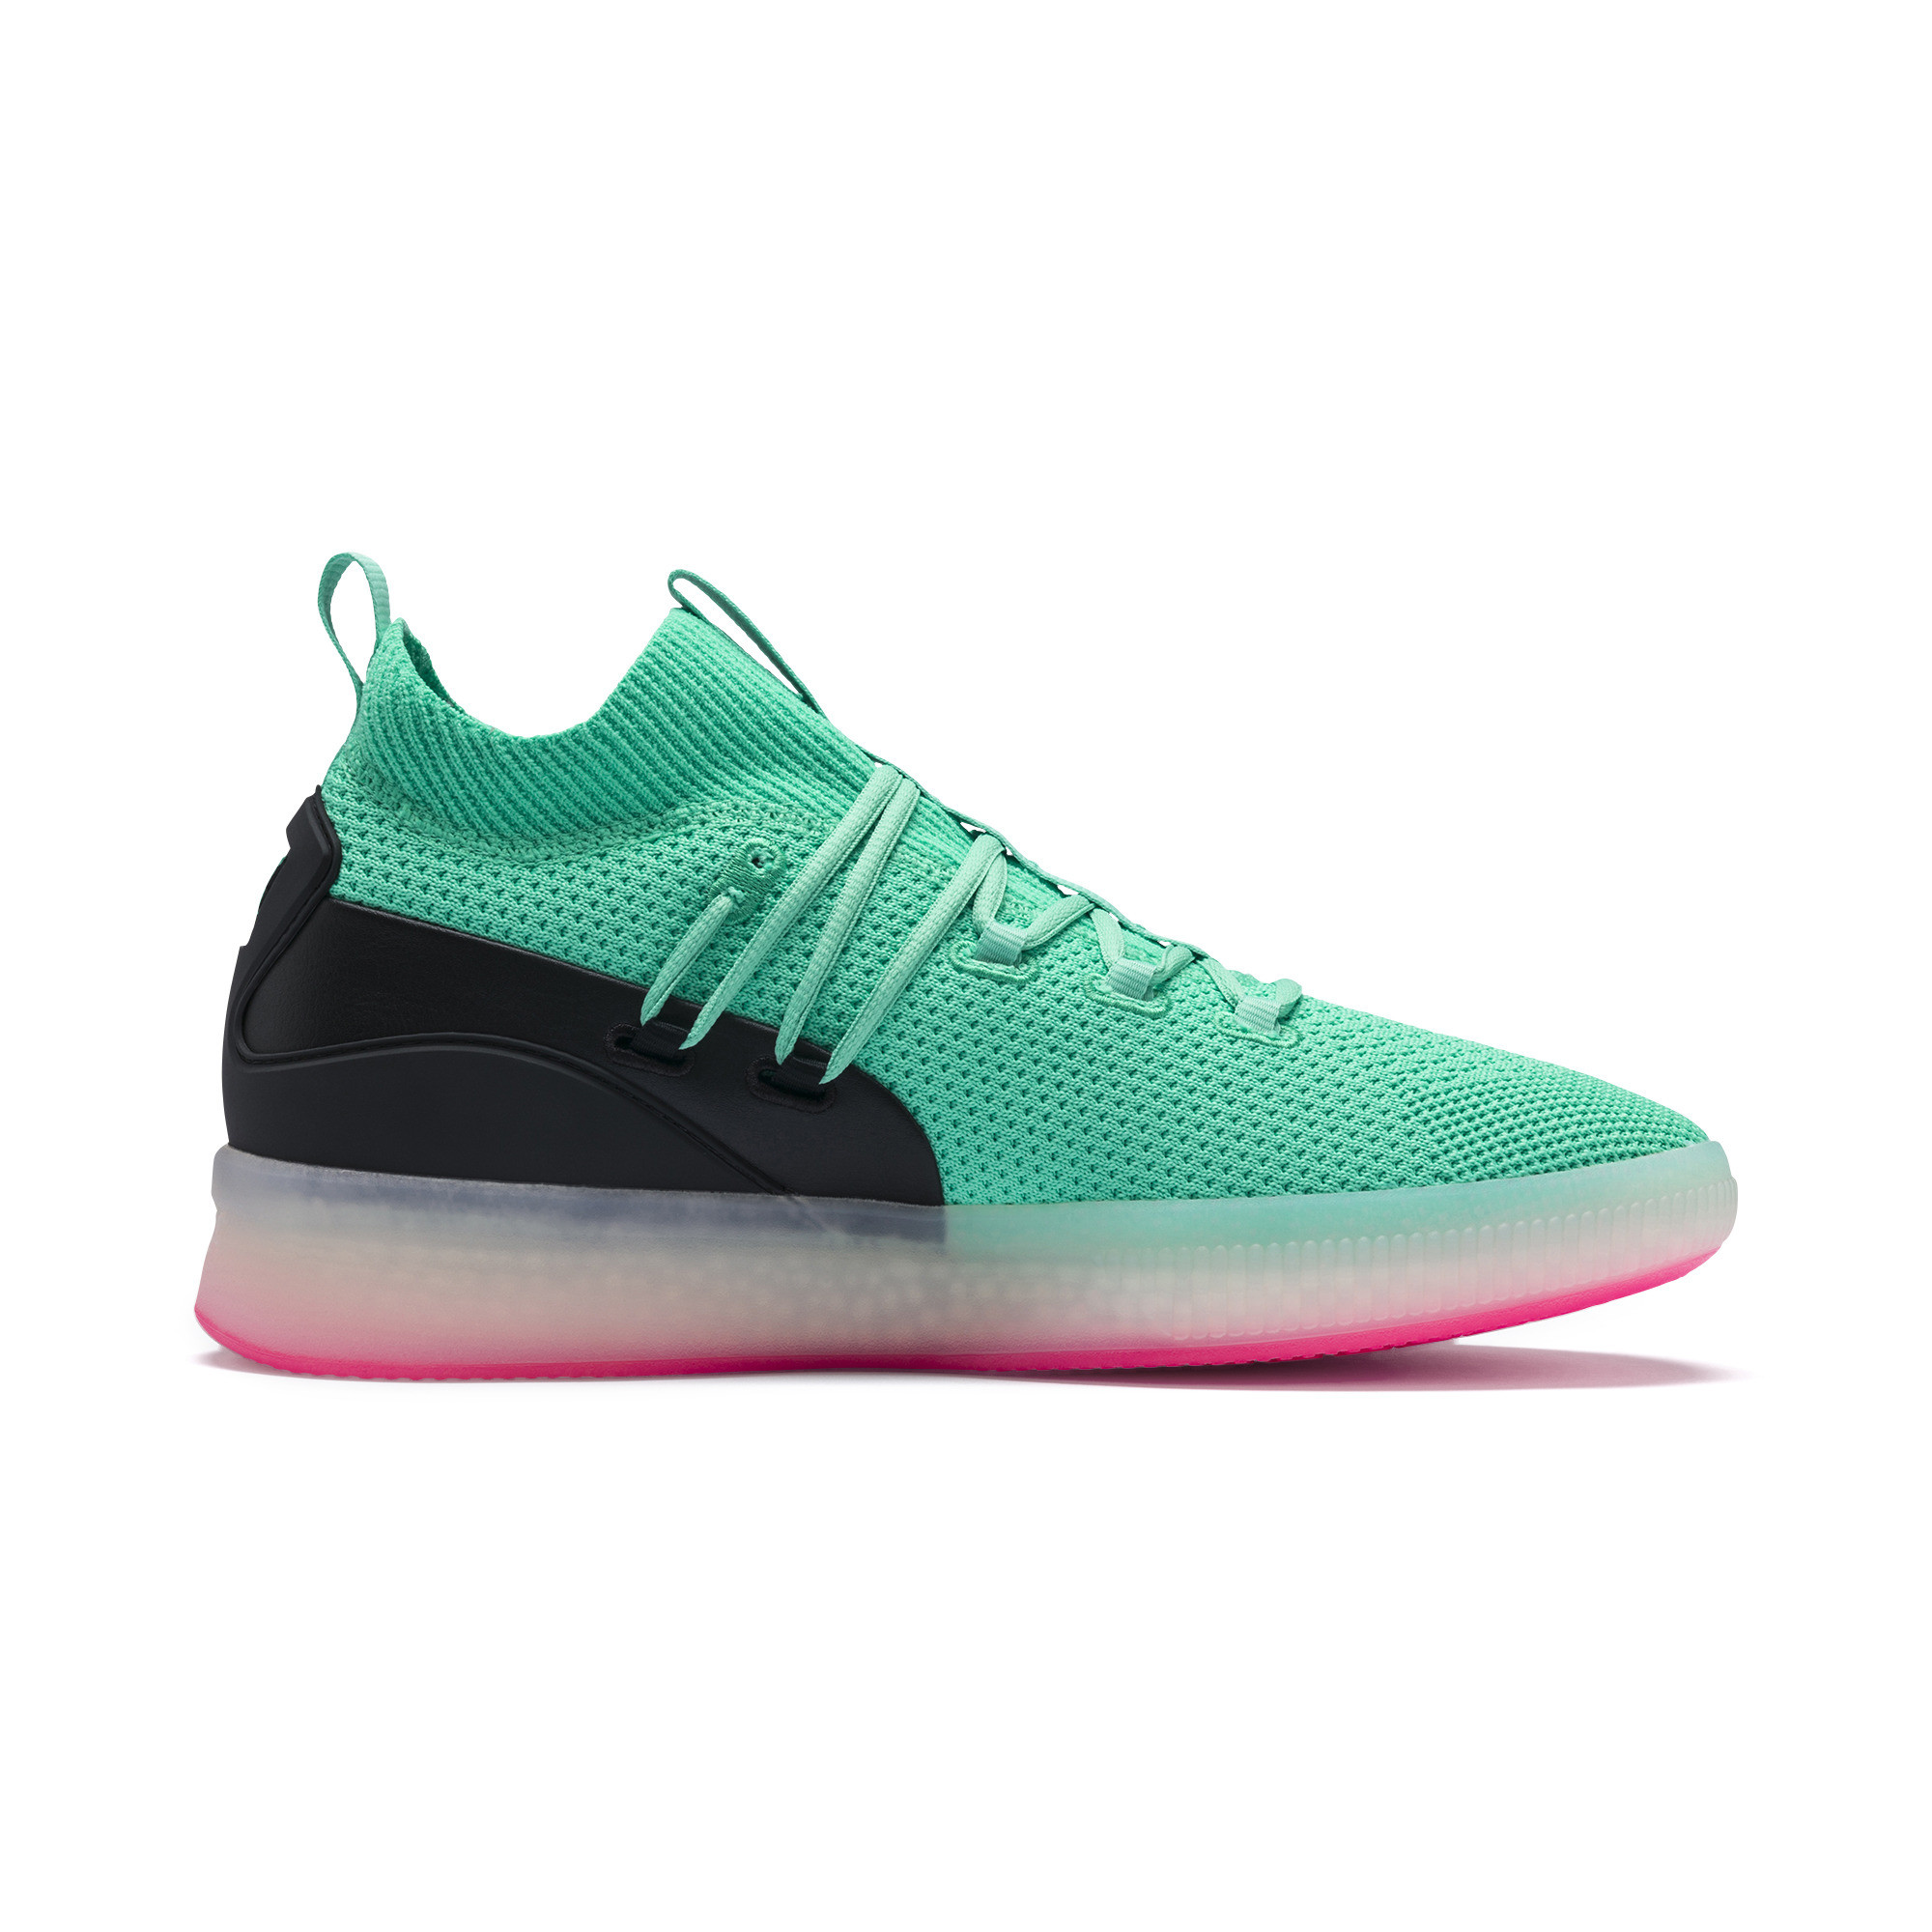 Image Puma Clyde Court Disrupt Men's Basketball Shoes #5